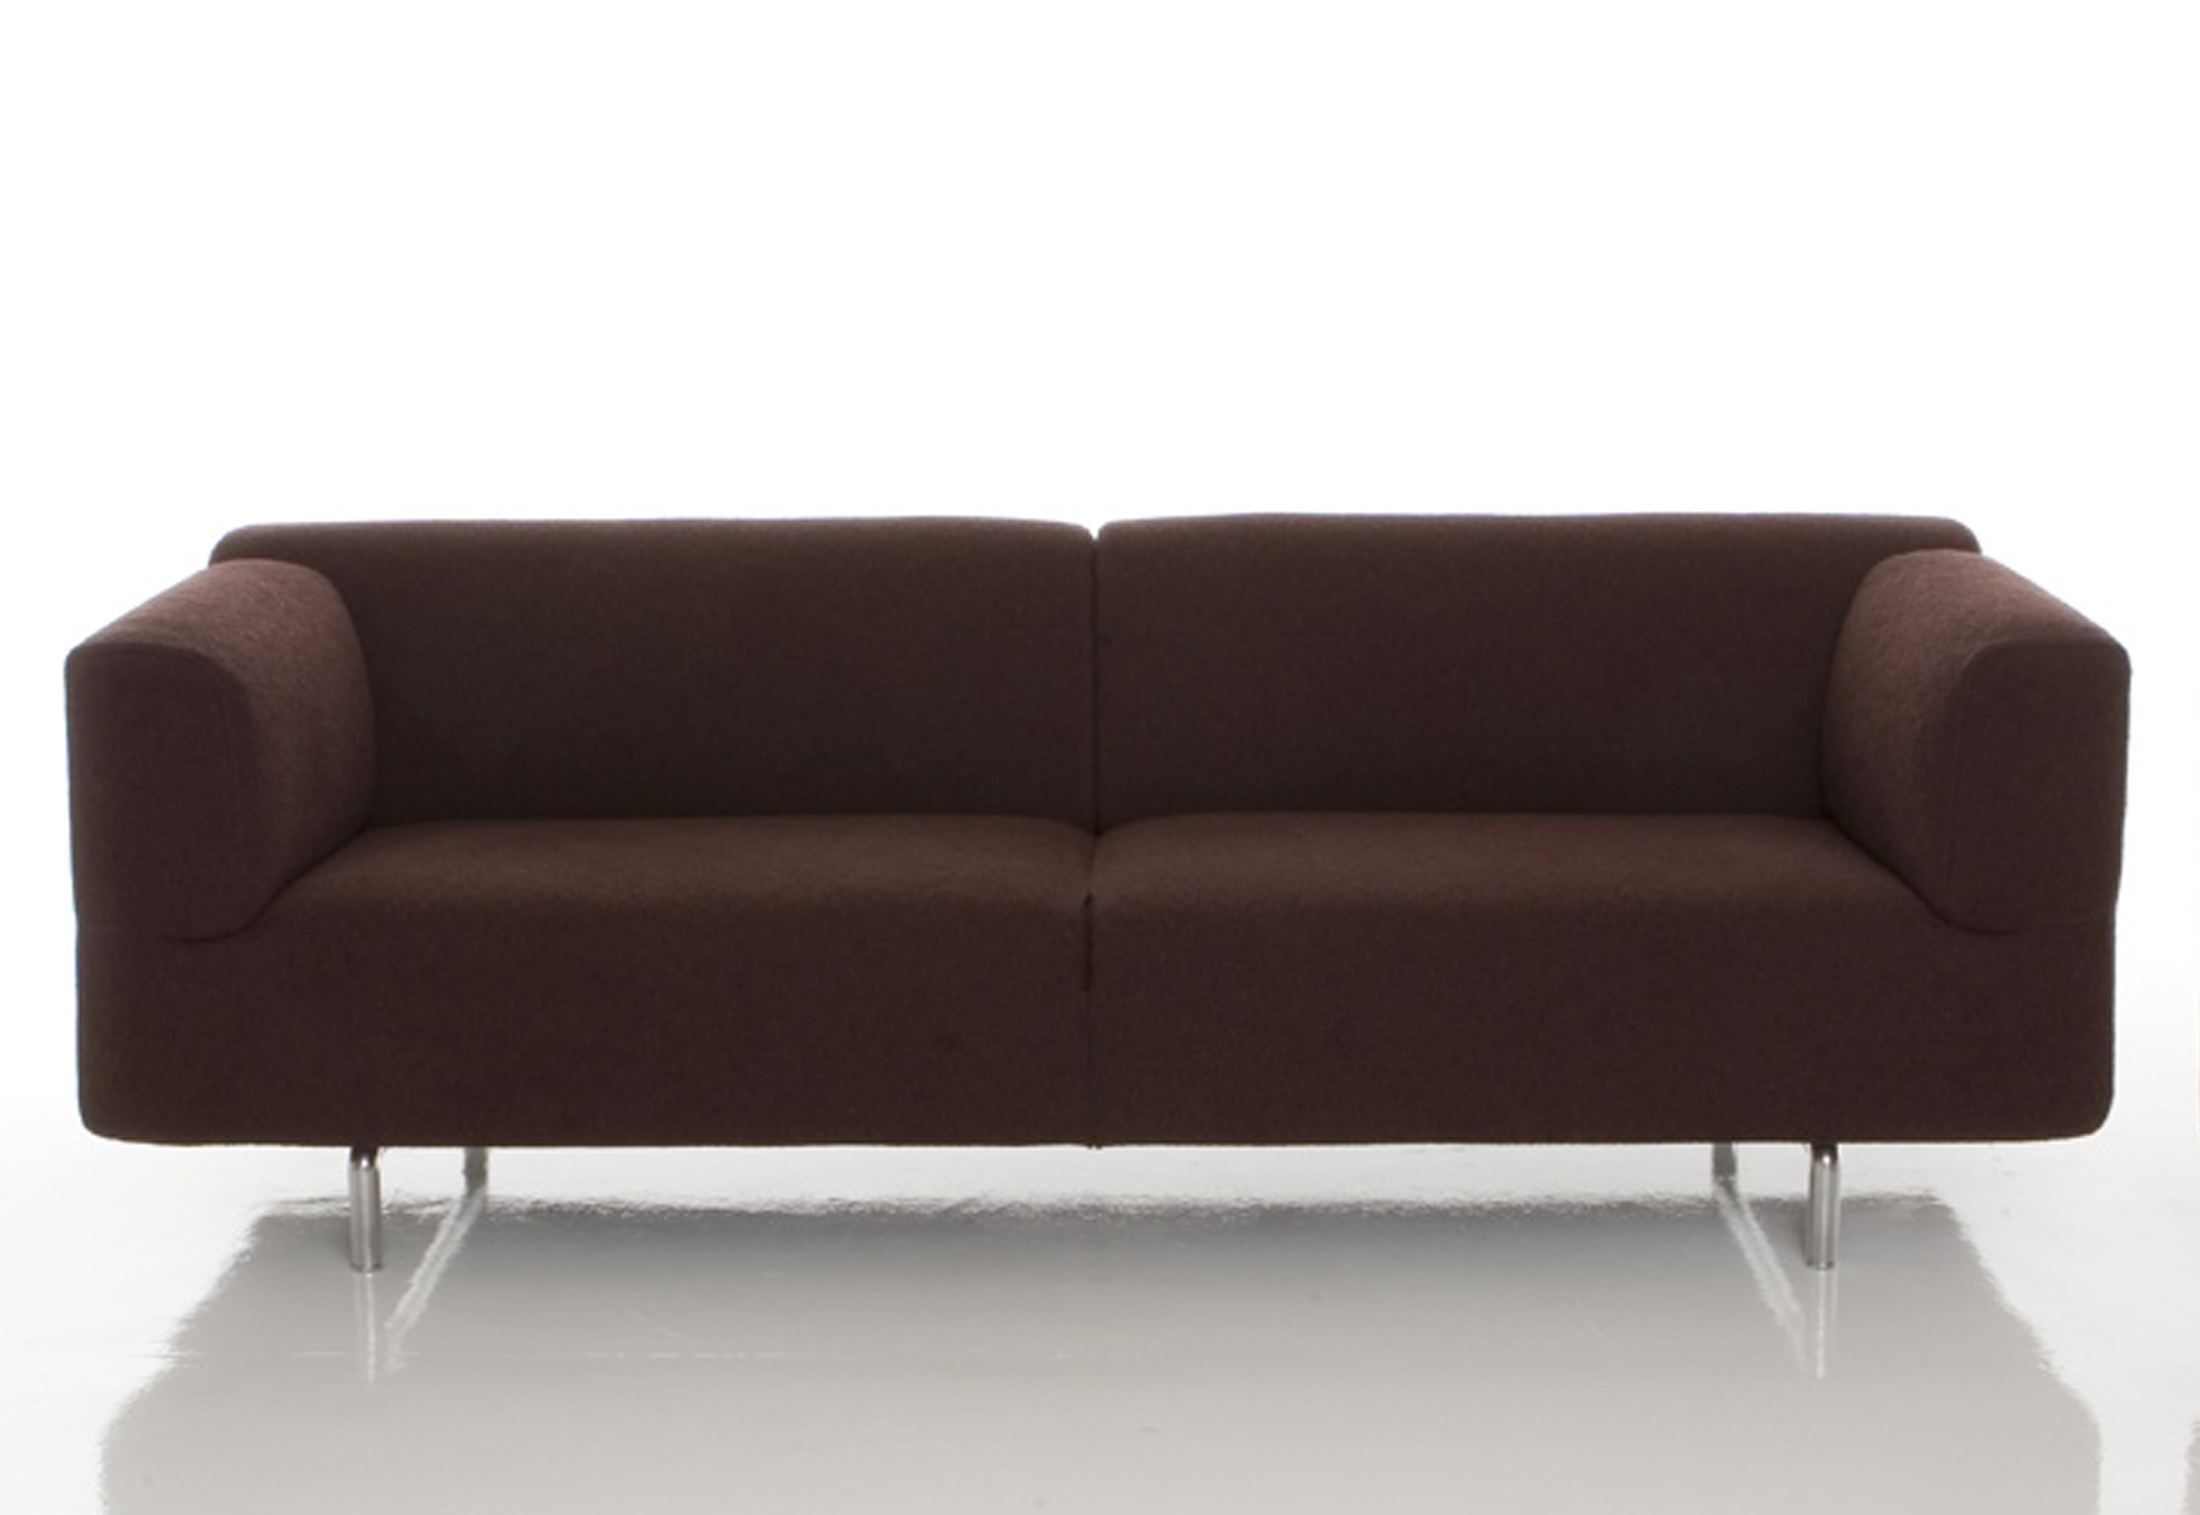 Lounge Sofa 2 Sitzer Outdoor Met 2-seater Sofa By Cassina | Stylepark